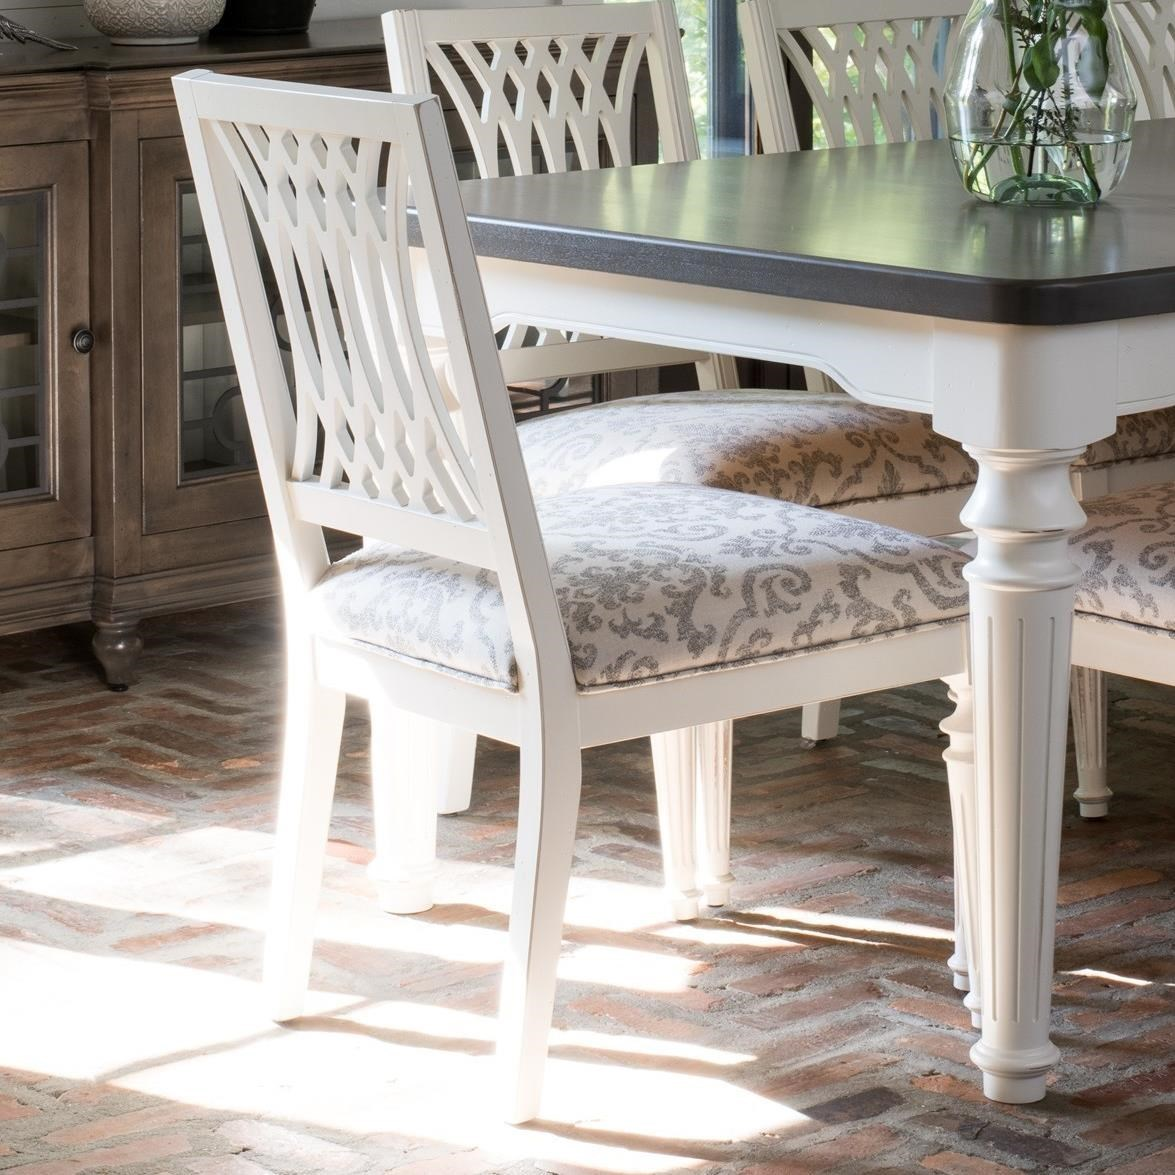 Customizable Dining Side Chair with Cutout Back Design